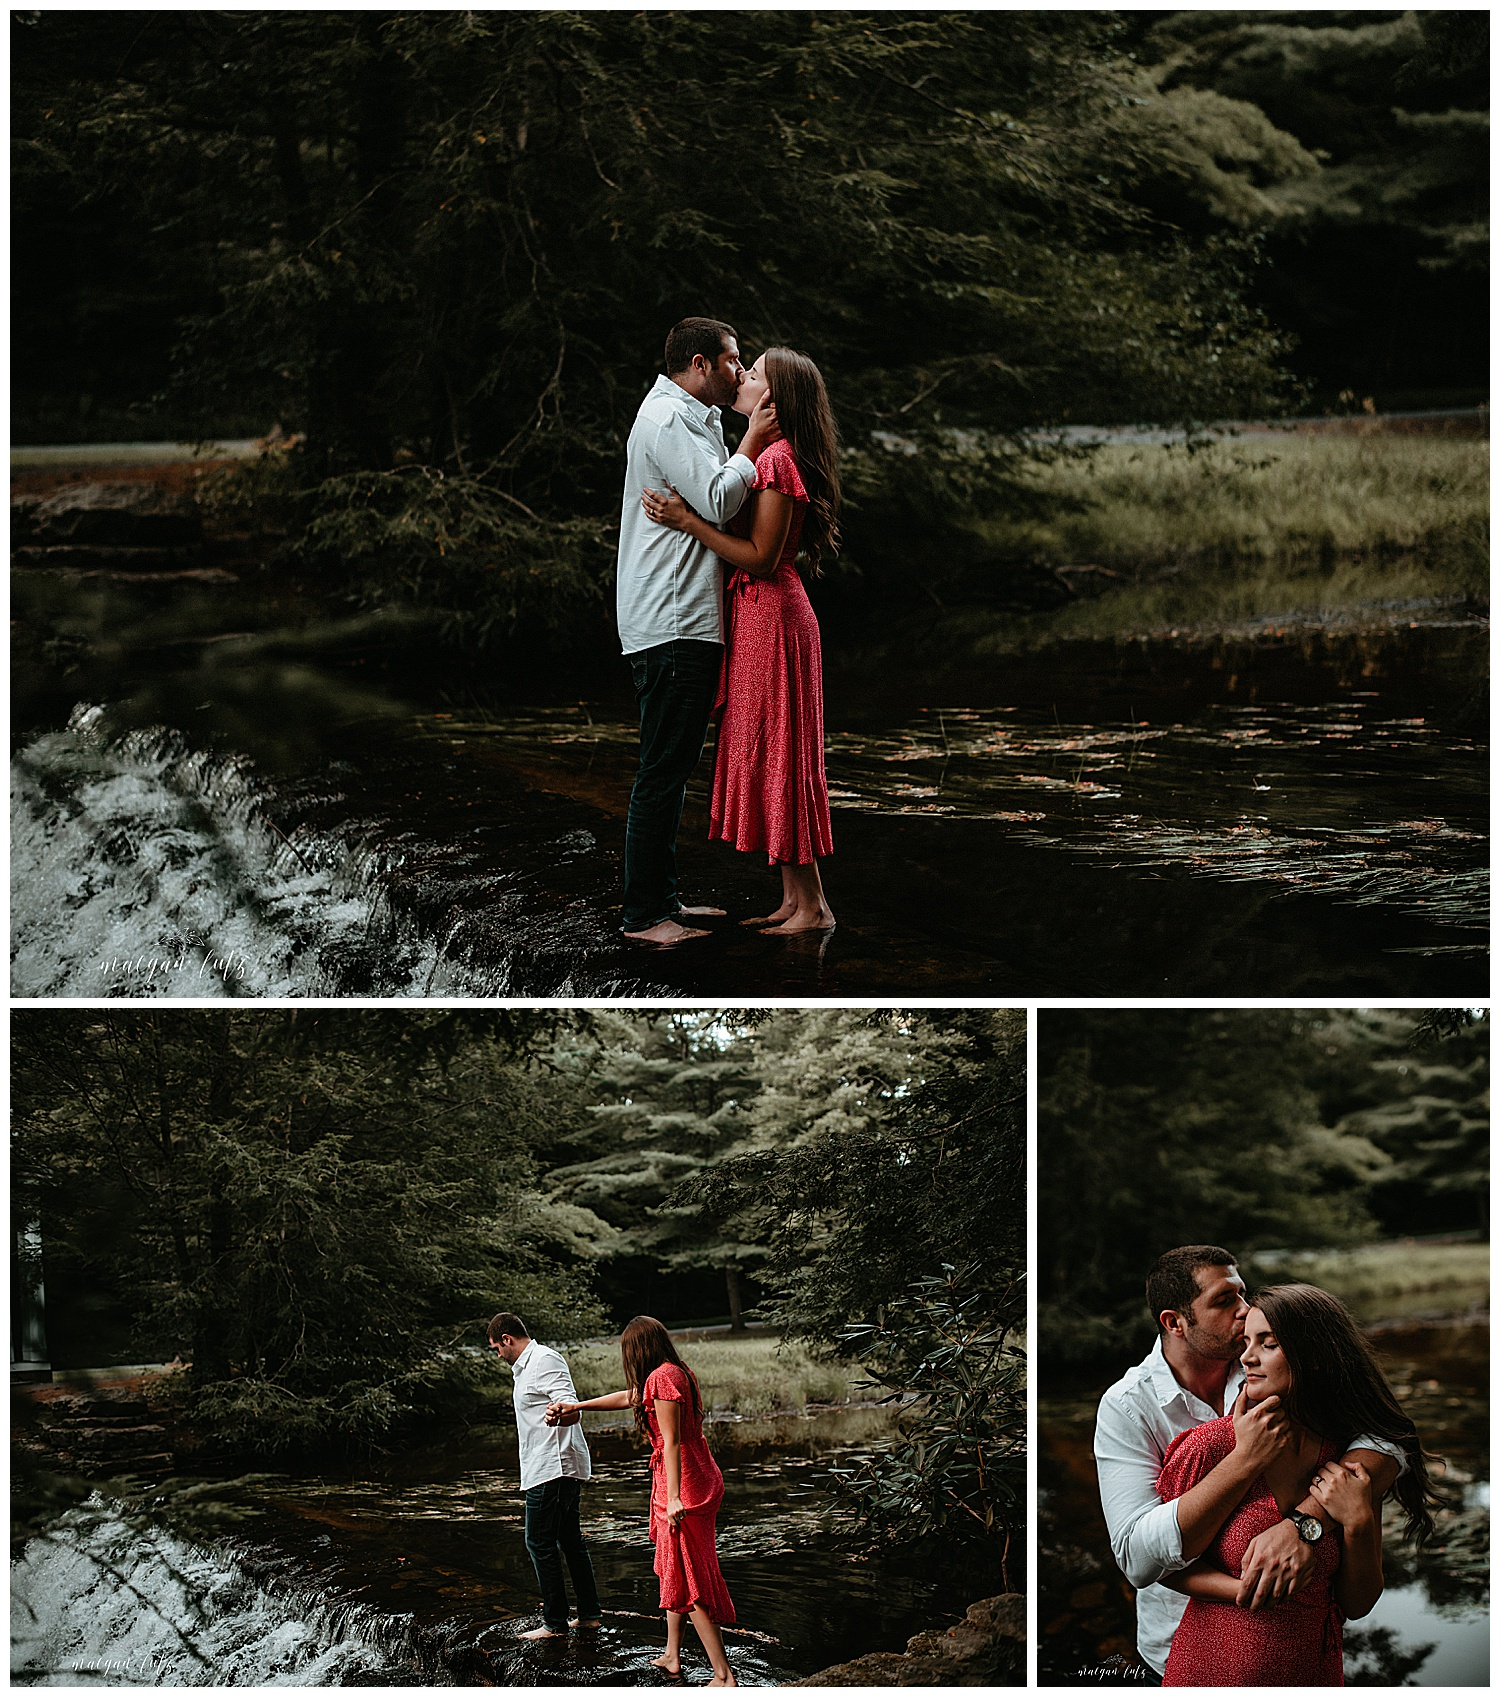 NEPA-Mount-Pocono-Lehigh-Valley-Wedding-Engagement-photographer-at-Hickory-Run-State-Park-Whitehaven-PA_0005.jpg